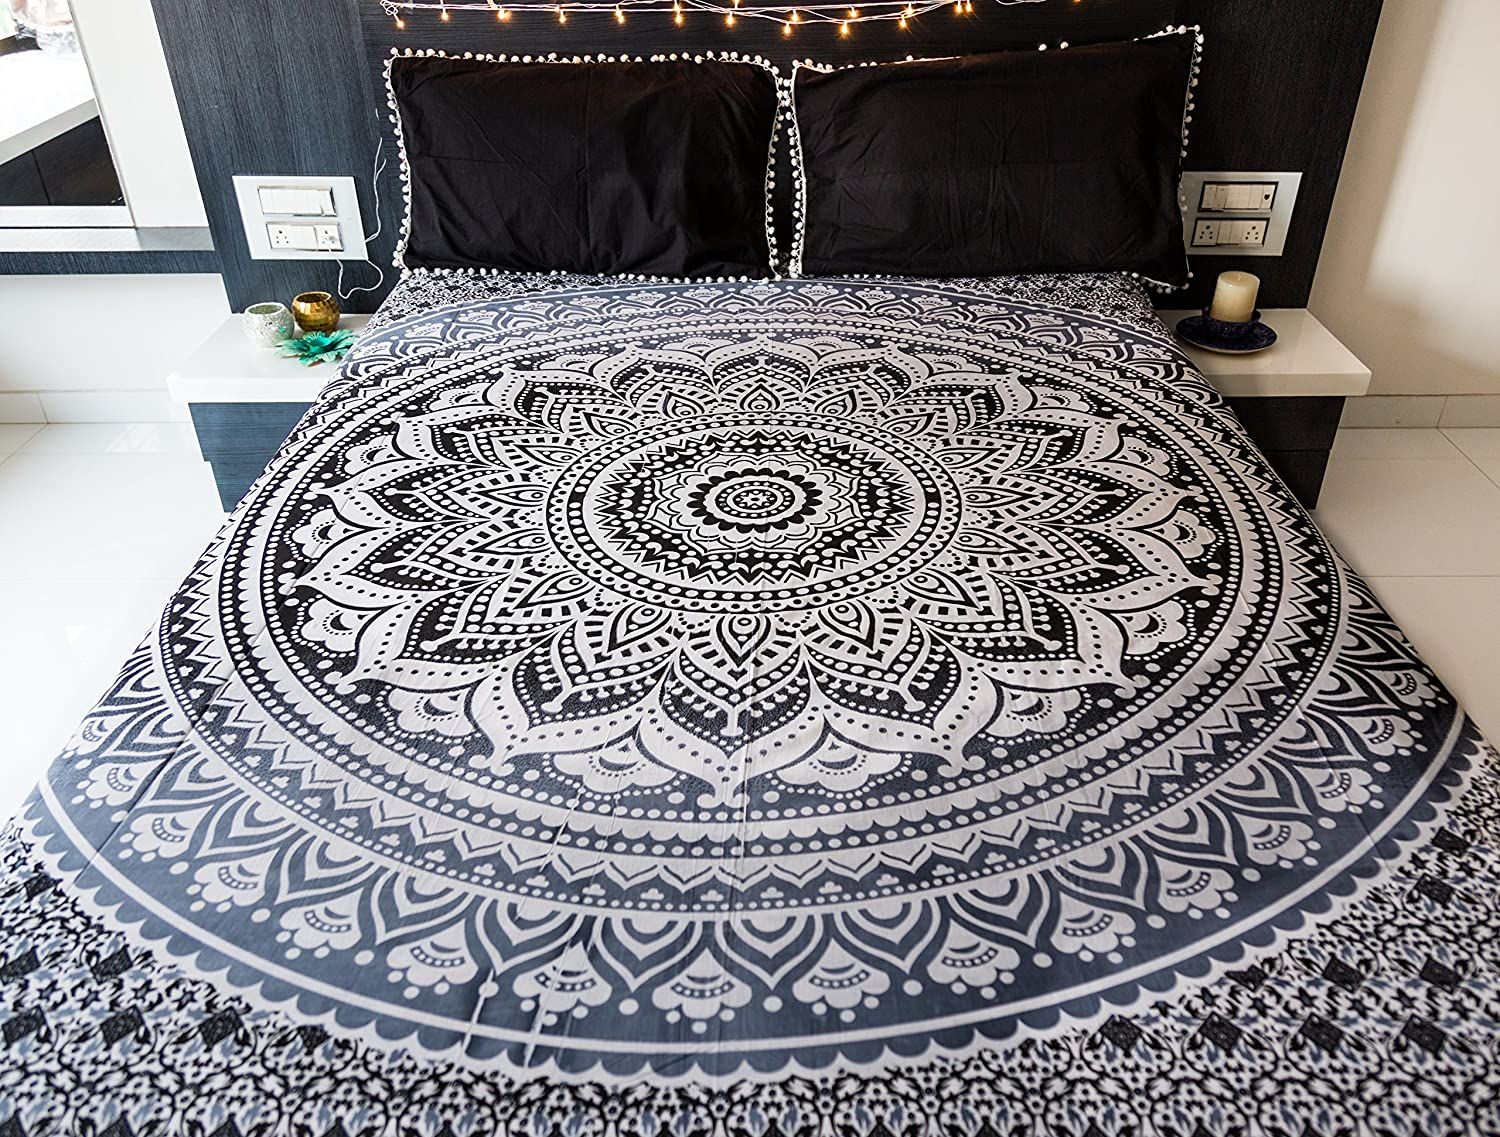 ... Indian Bohemian Hippie Tapestry Wall Hanging, Hippy Blanket Or Beach  Throw, Mandala Ombre Bedspread For Bedroom, Black Gray Queen Size Boho  Decor: Home ...